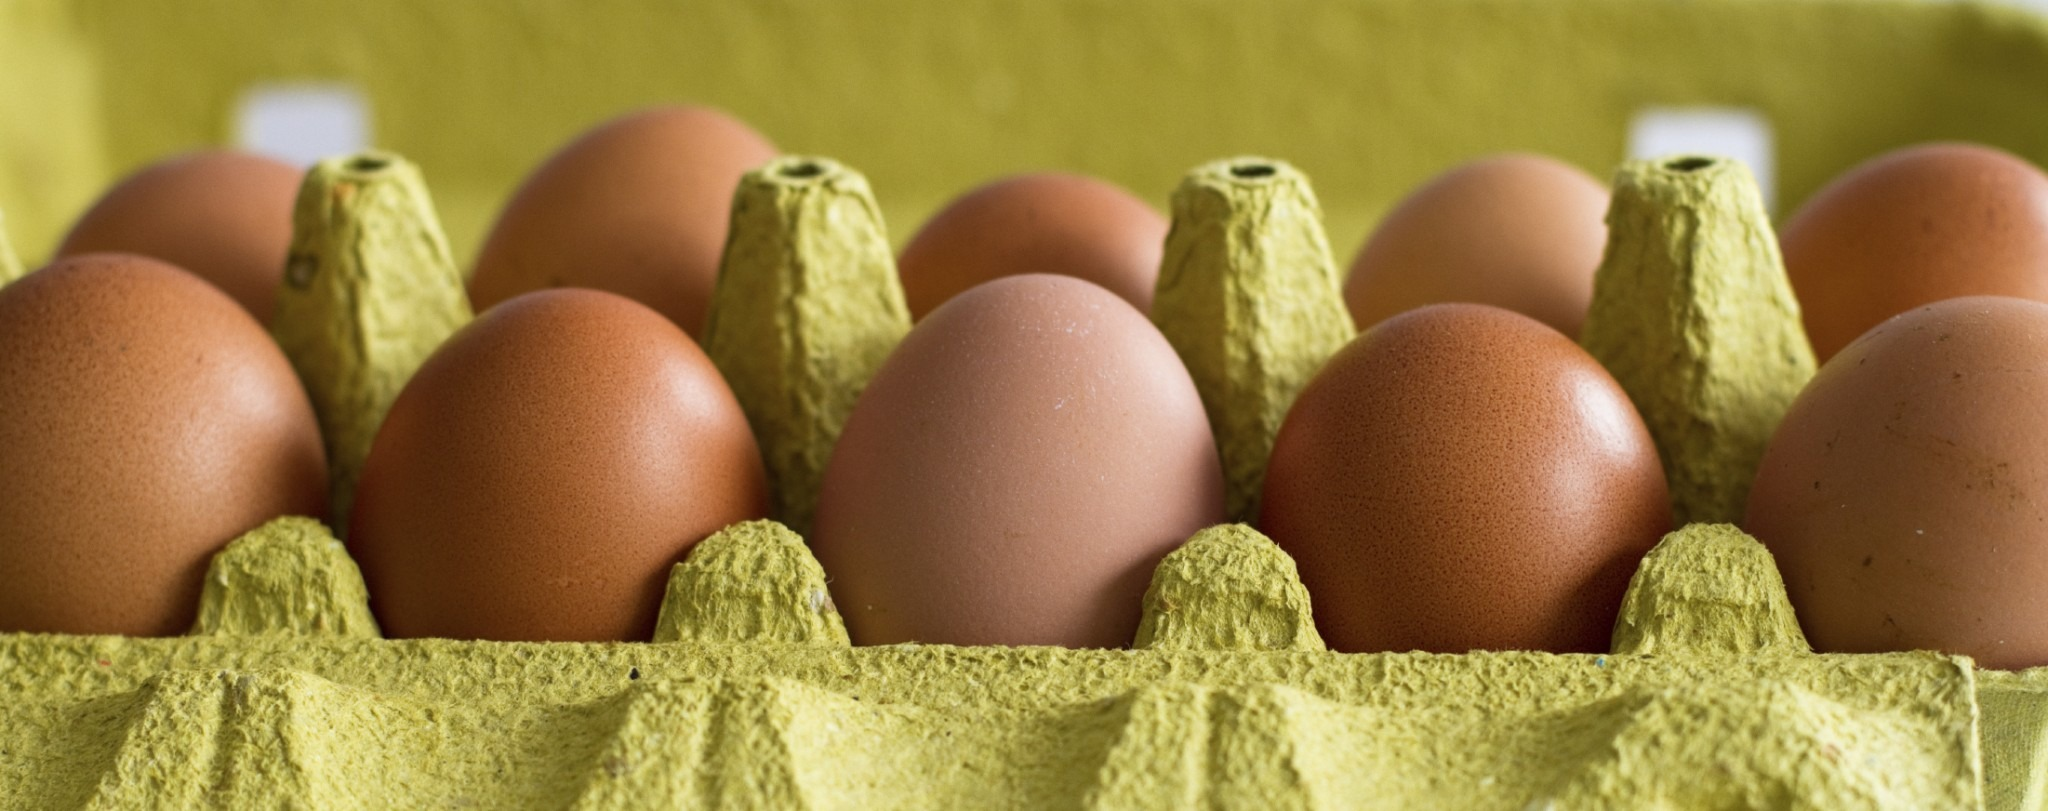 weekly economic news roundup and egg prices falling